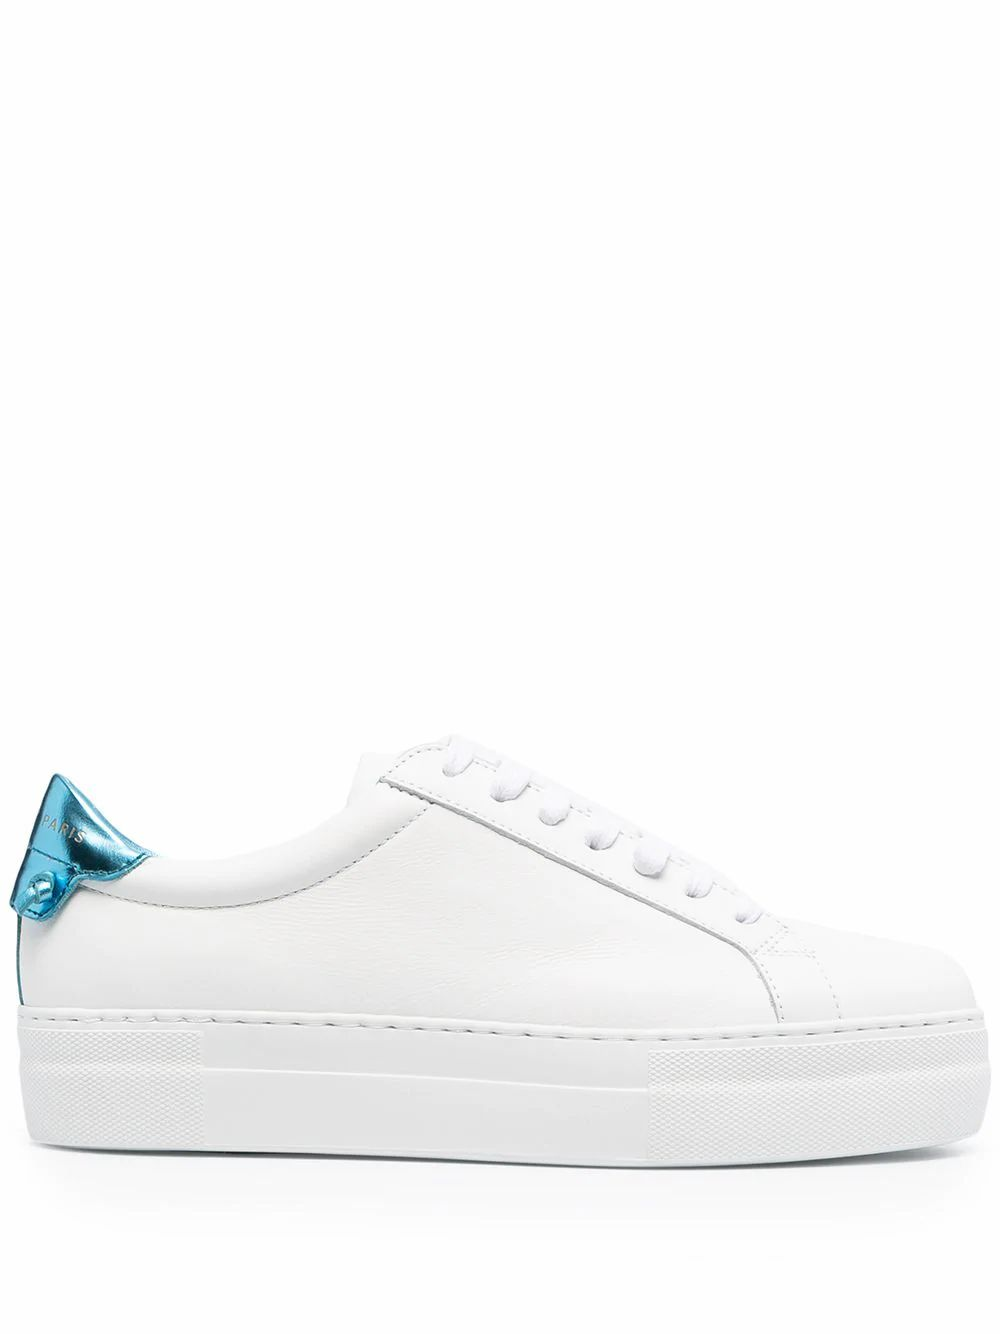 Givenchy Leathers GIVENCHY WOMEN'S BE001HE0Y2148 WHITE LEATHER SNEAKERS